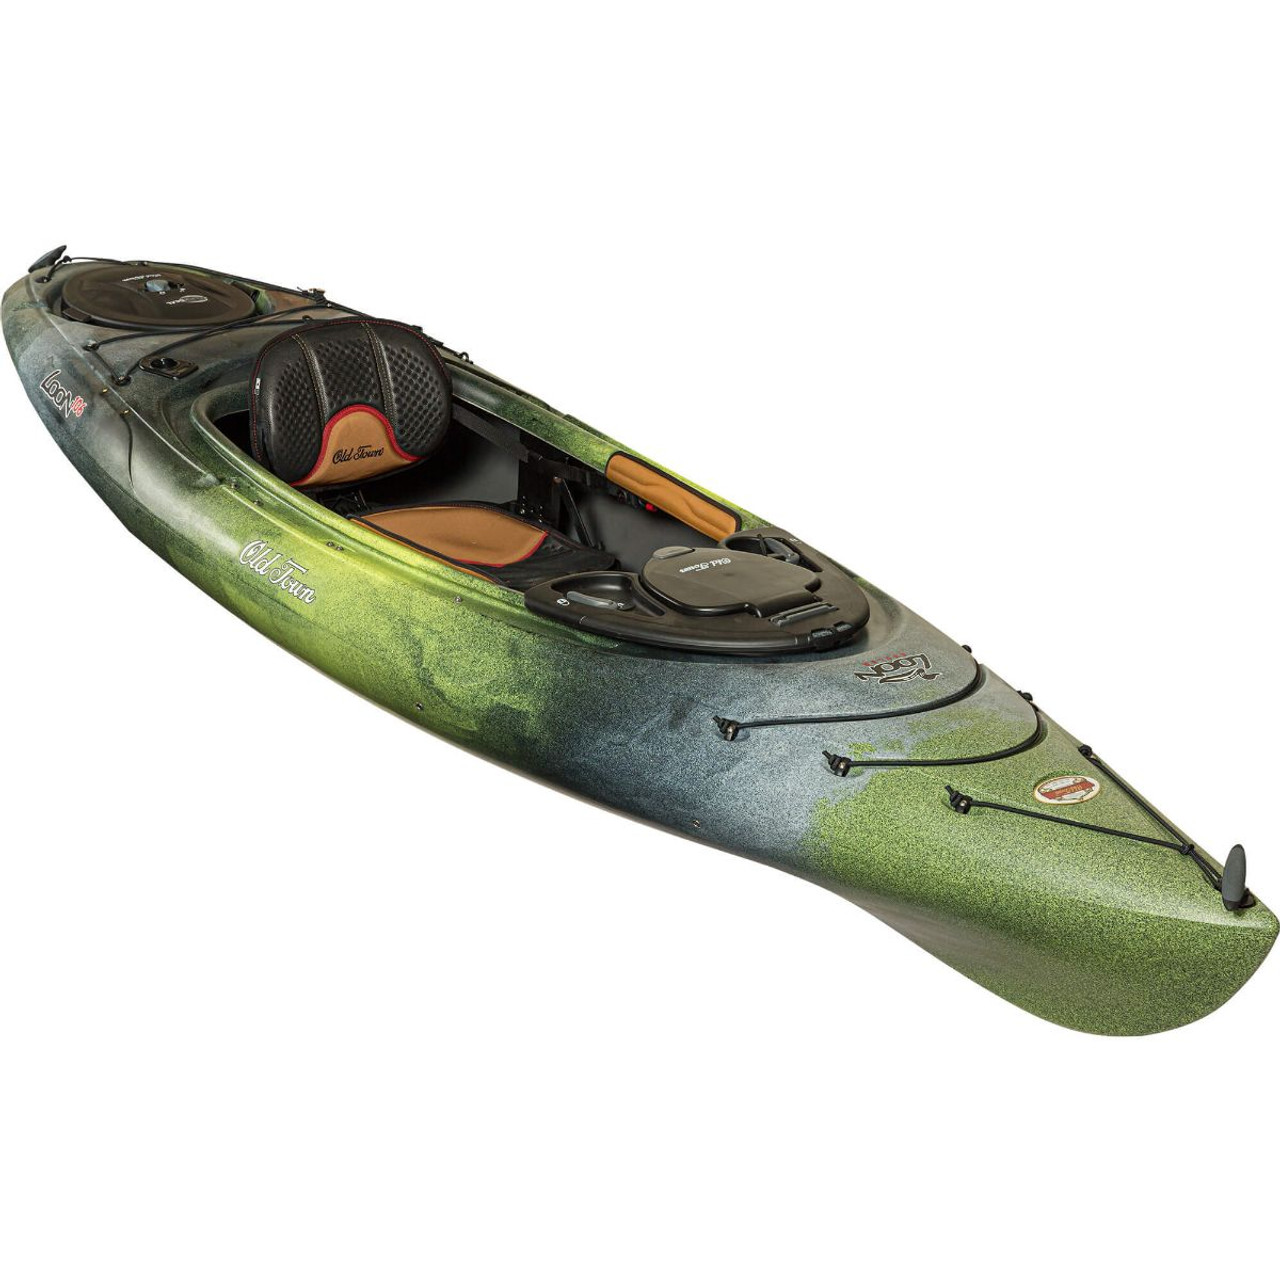 Loon 106 Angler first light